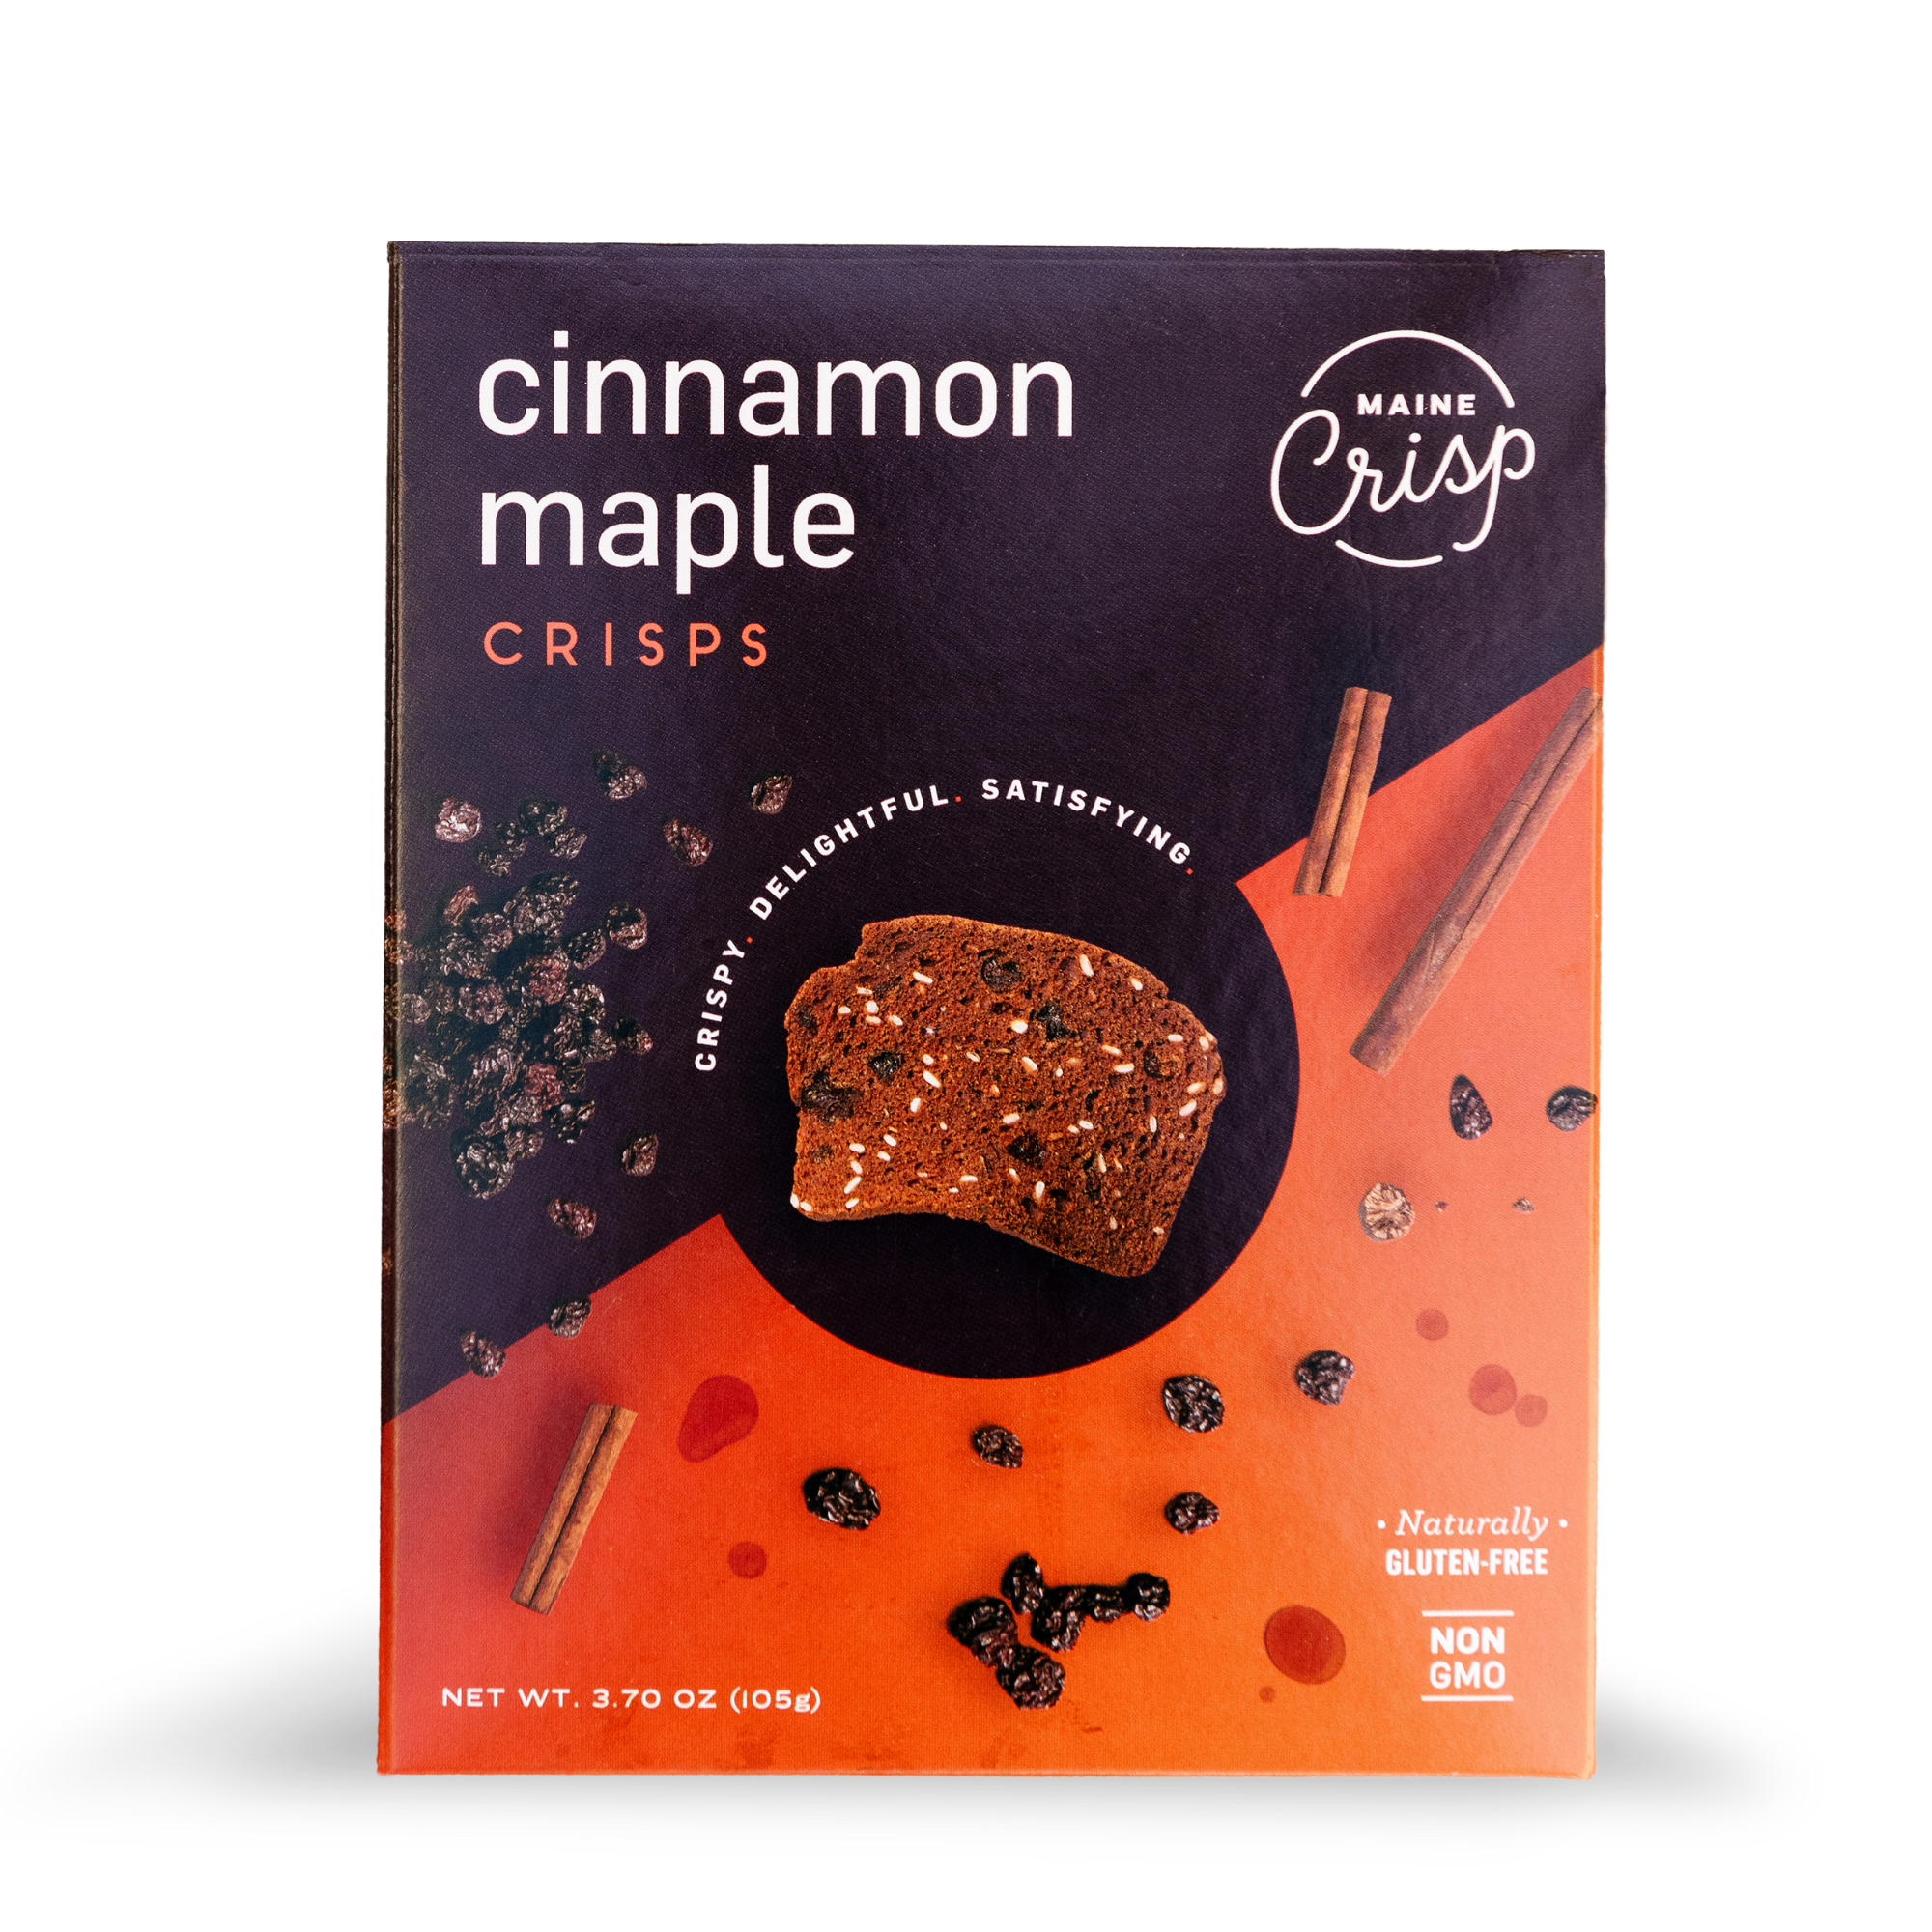 a brown and orange box with photographs of zante currants and cinnamon sticks with a photograph of a gluten-free cinnamon maple crisp in the center